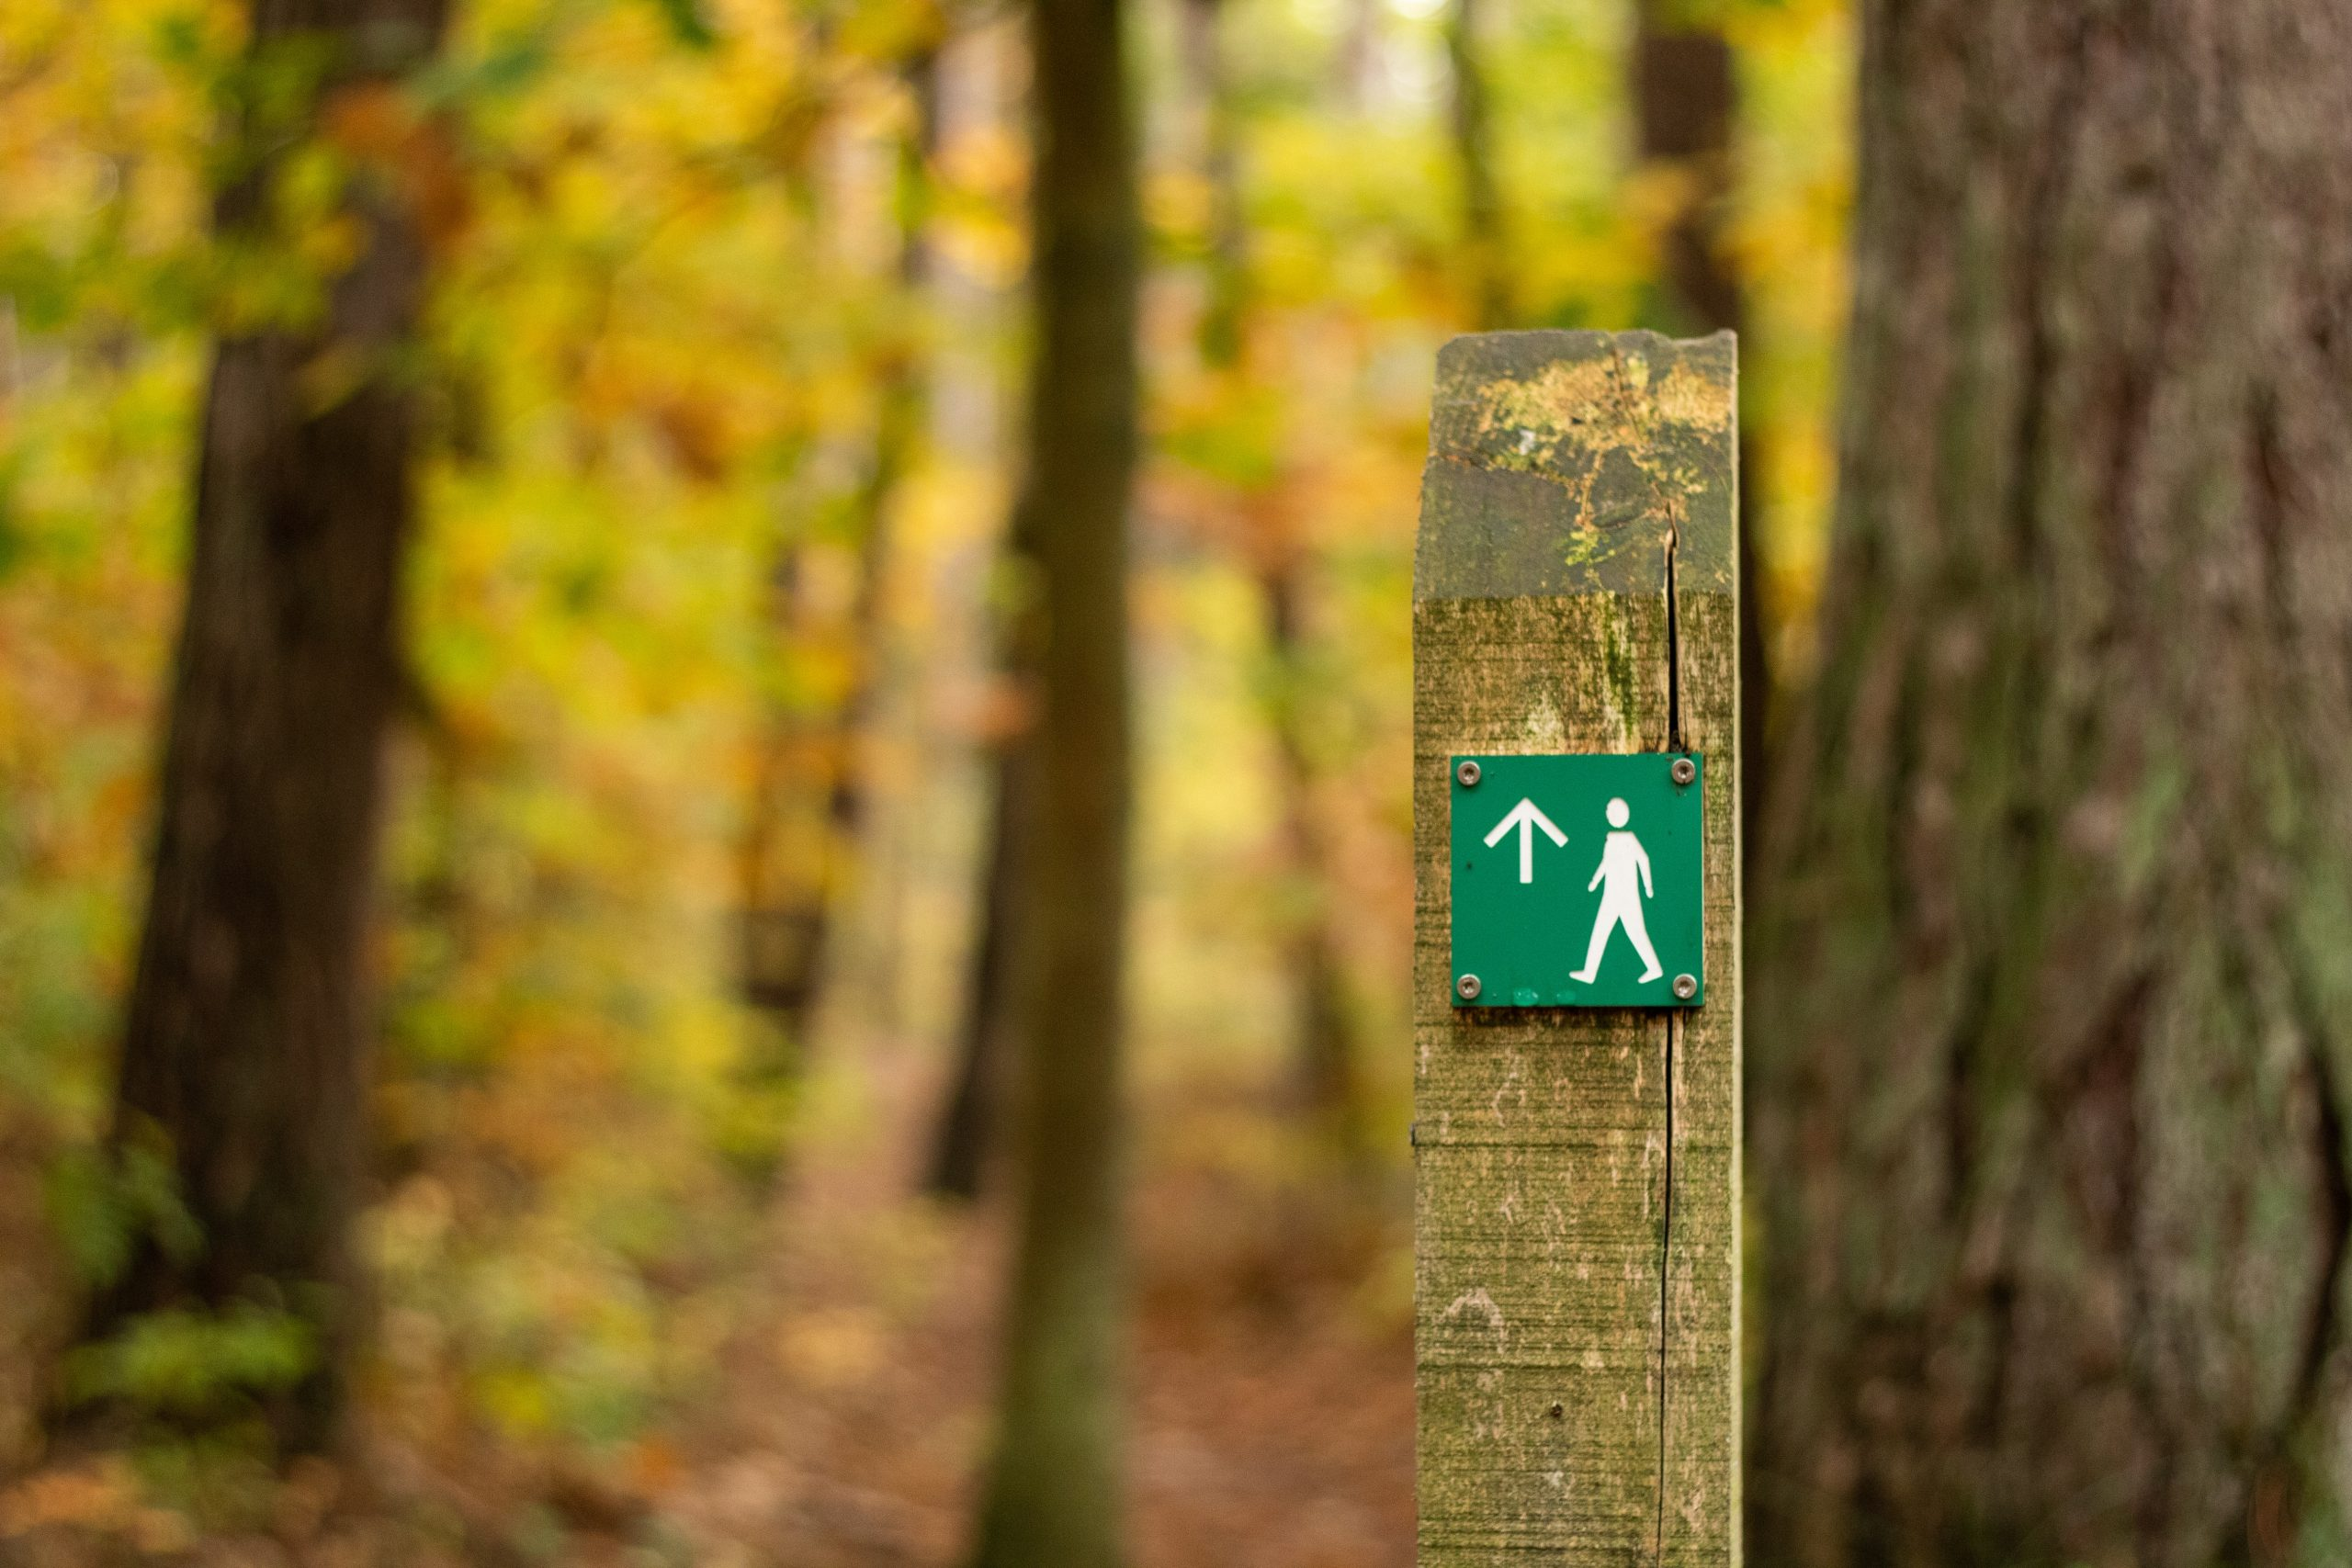 A wooden post with a small sign on it, a white stickman on green, indicating a footpath. The signpost is in an autumnal forest.